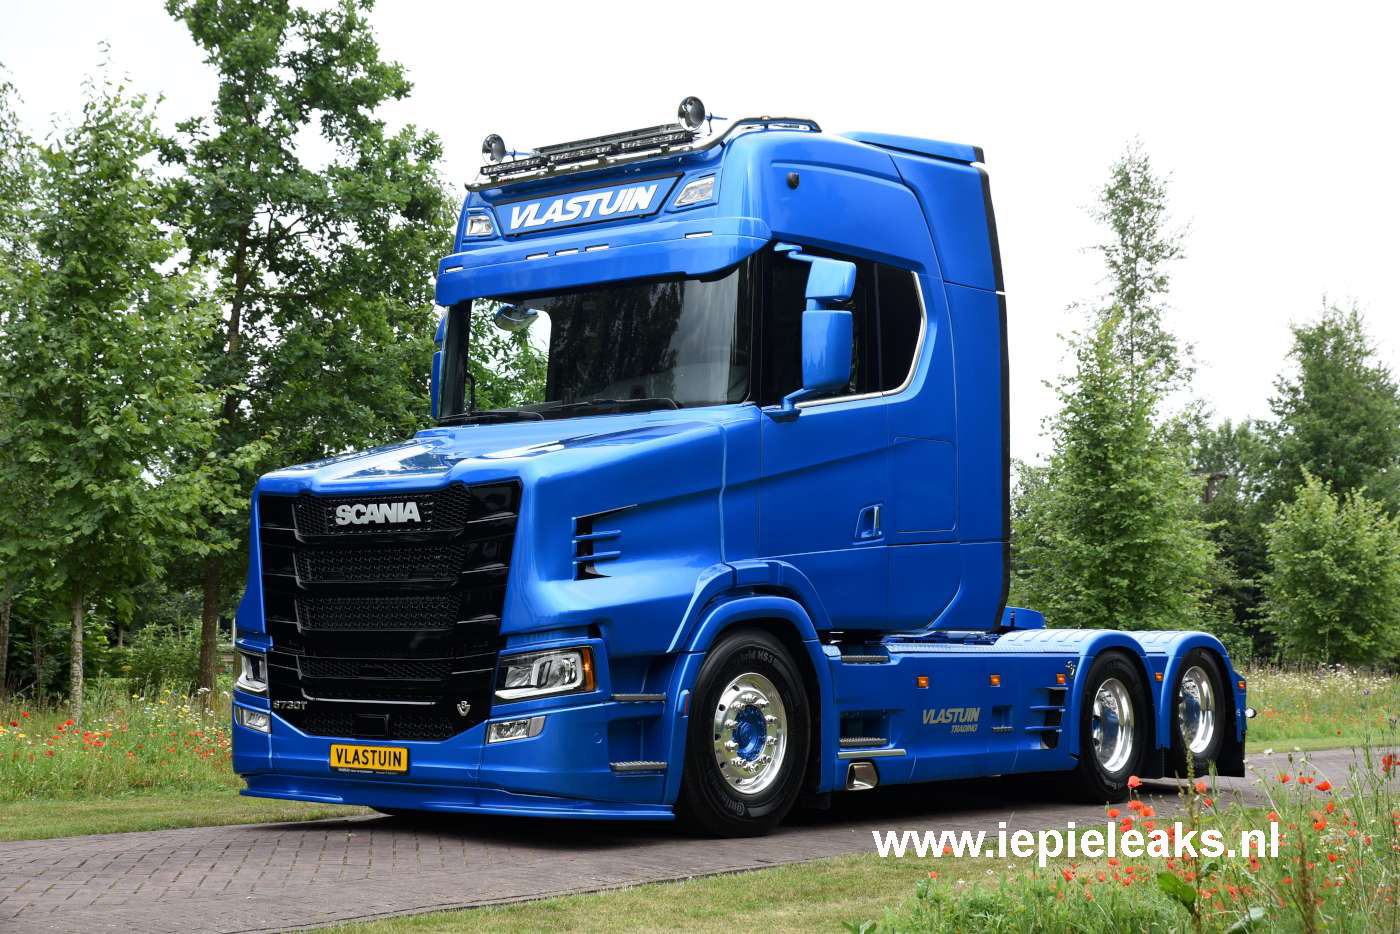 Scania S730t Revealed At Vlastuin Truck Amp Trailerservice